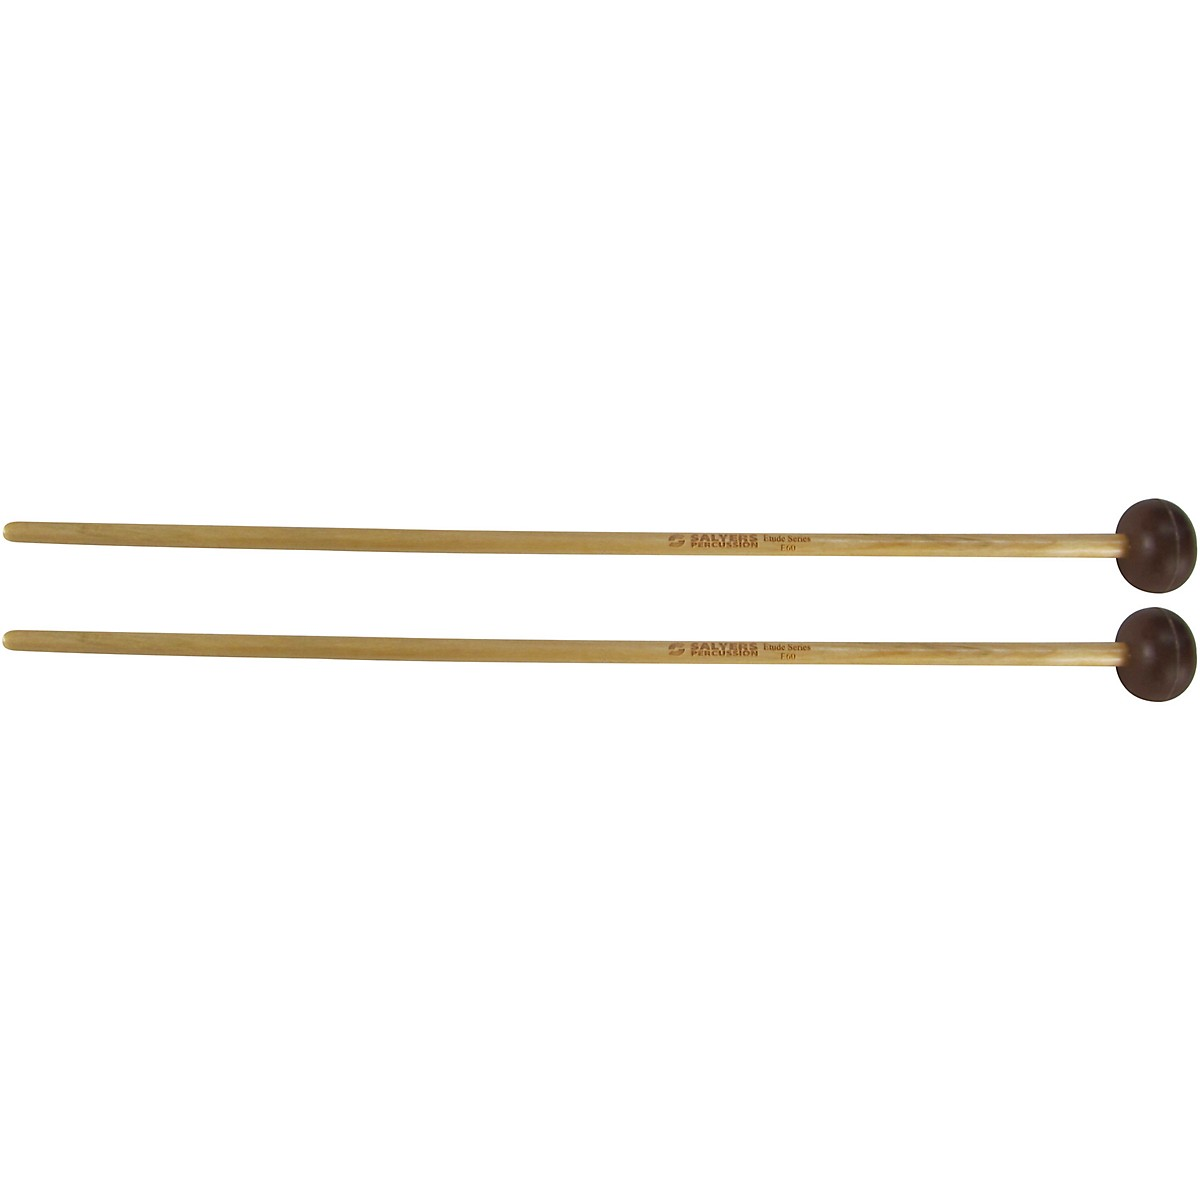 Salyers Percussion Etude Series Rubber Keyboard Mallets